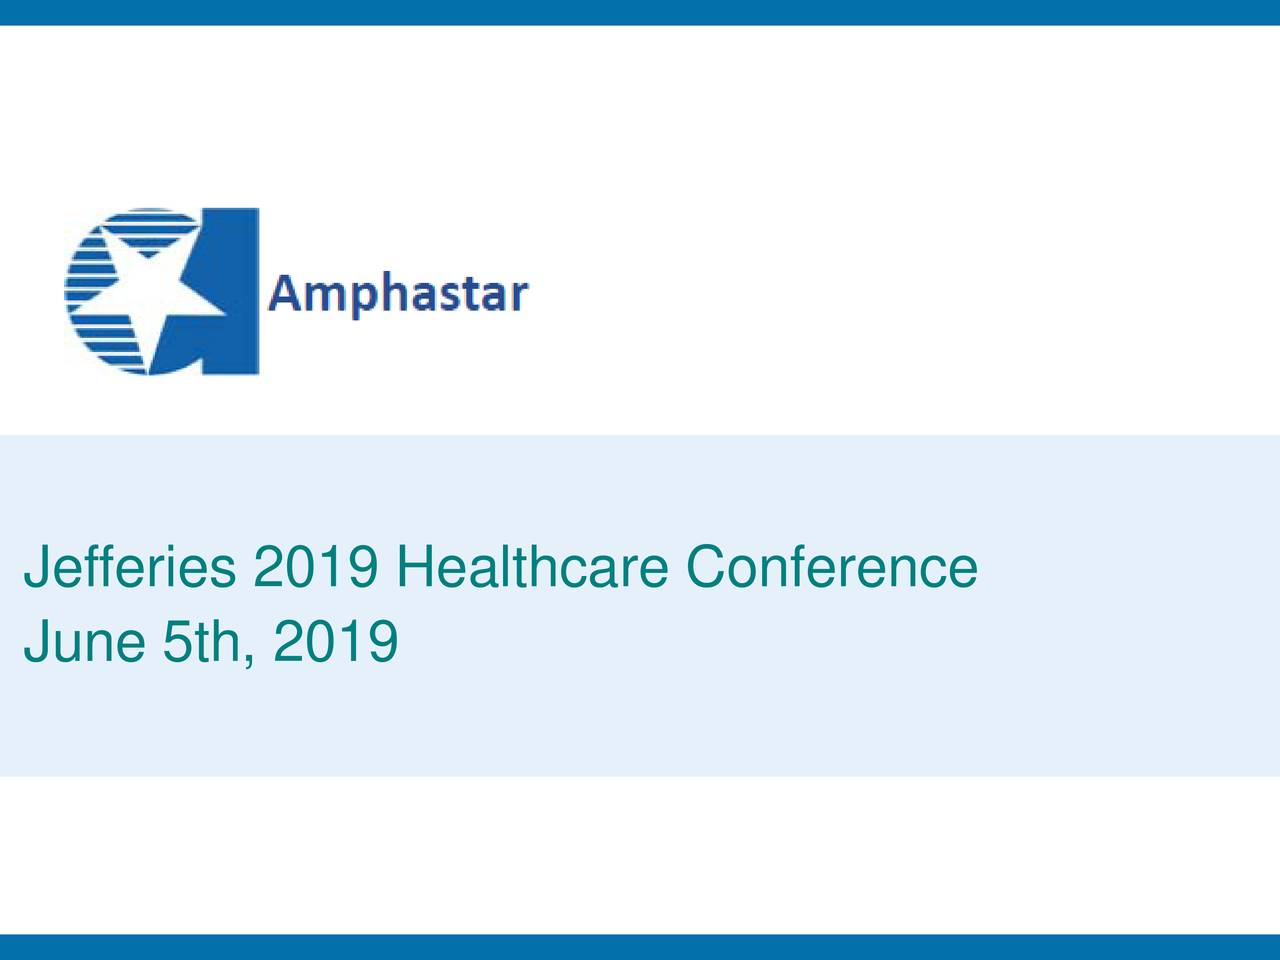 Amphastar Pharmaceuticals (AMPH) Presents At Jefferies 2019 Healthcare Conference - Slideshow